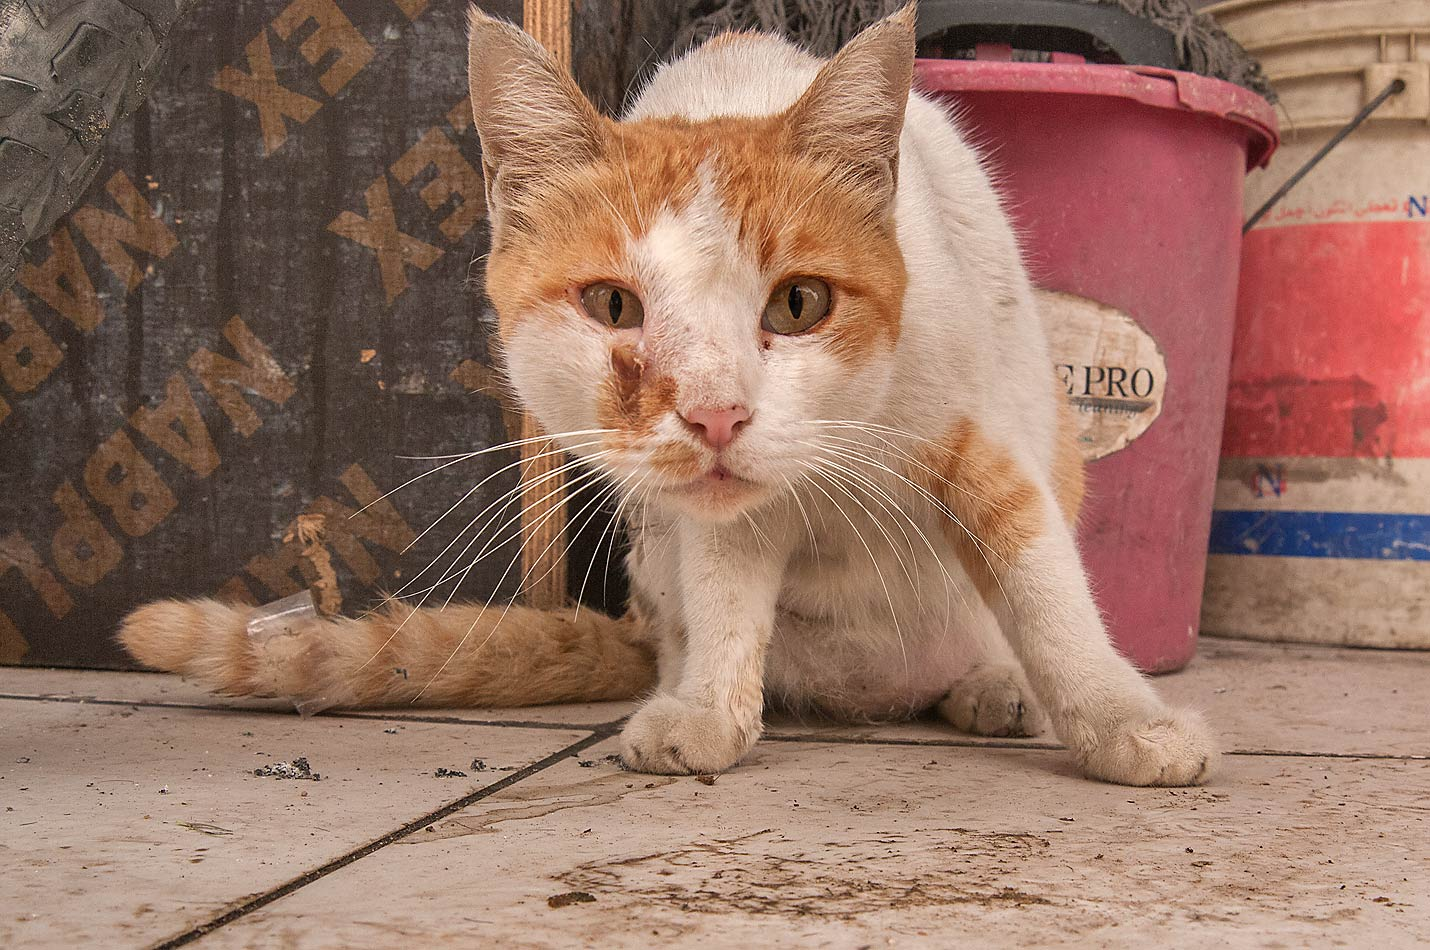 Cat with damaged face on Al Maymoun St., Musheirib area. Doha, Qatar